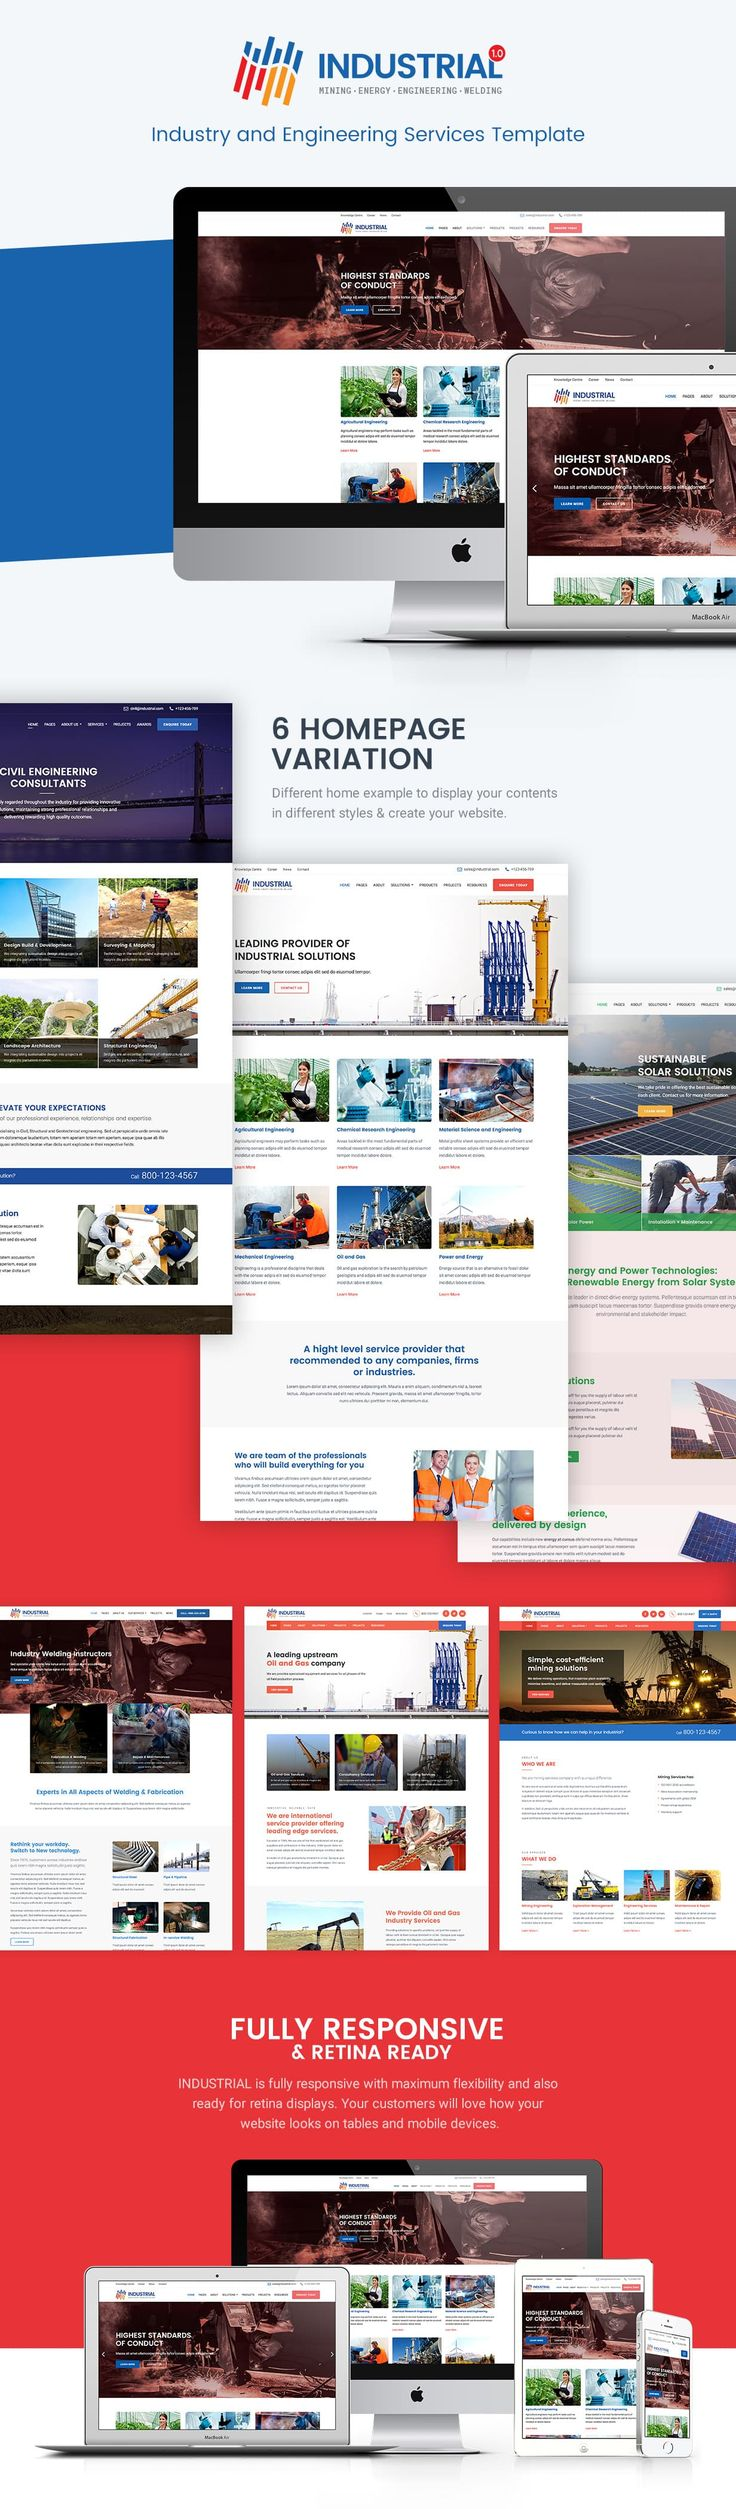 wedding invitation template themeforest%0A Industrial  Industry and Engineering Services Template